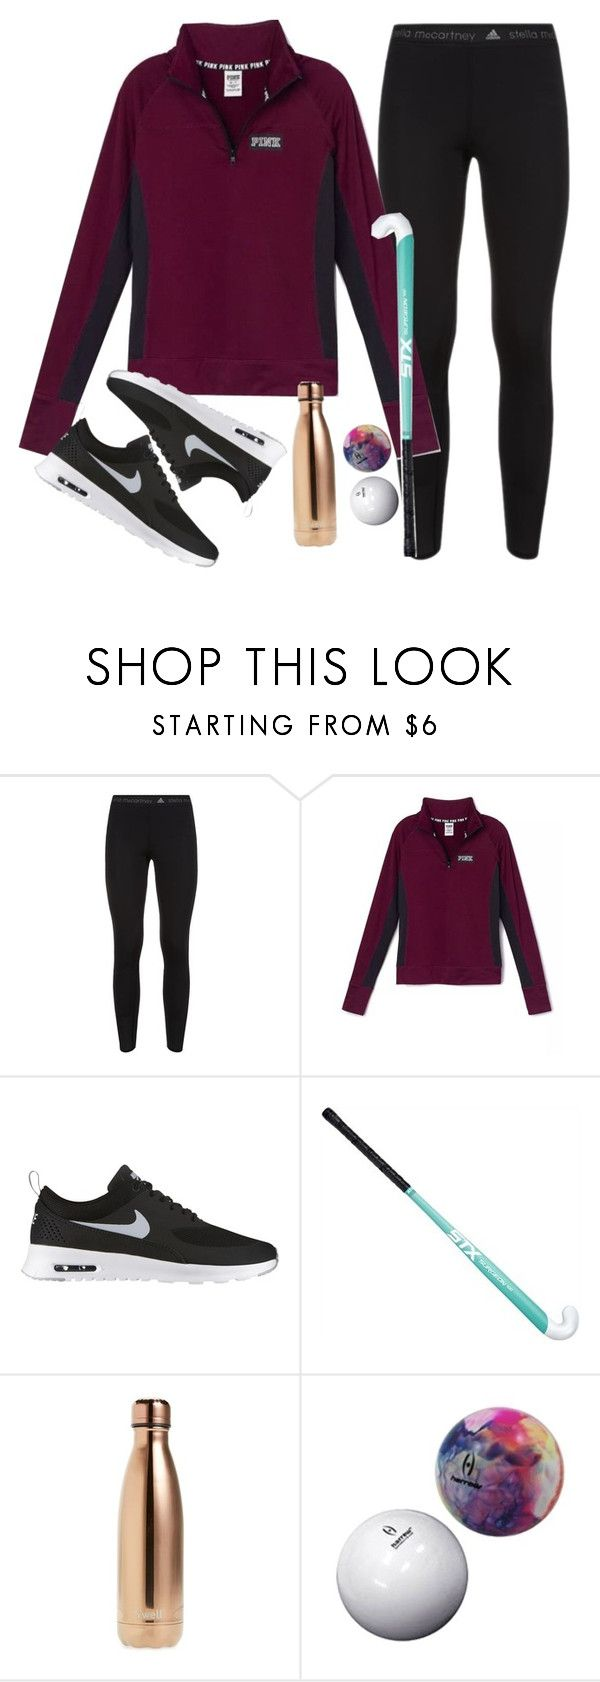 """Field Hockey Season is over"" by haileymartin12 ❤ liked on Polyvore featuring adidas, Victoria's Secret, NIKE and S'well"